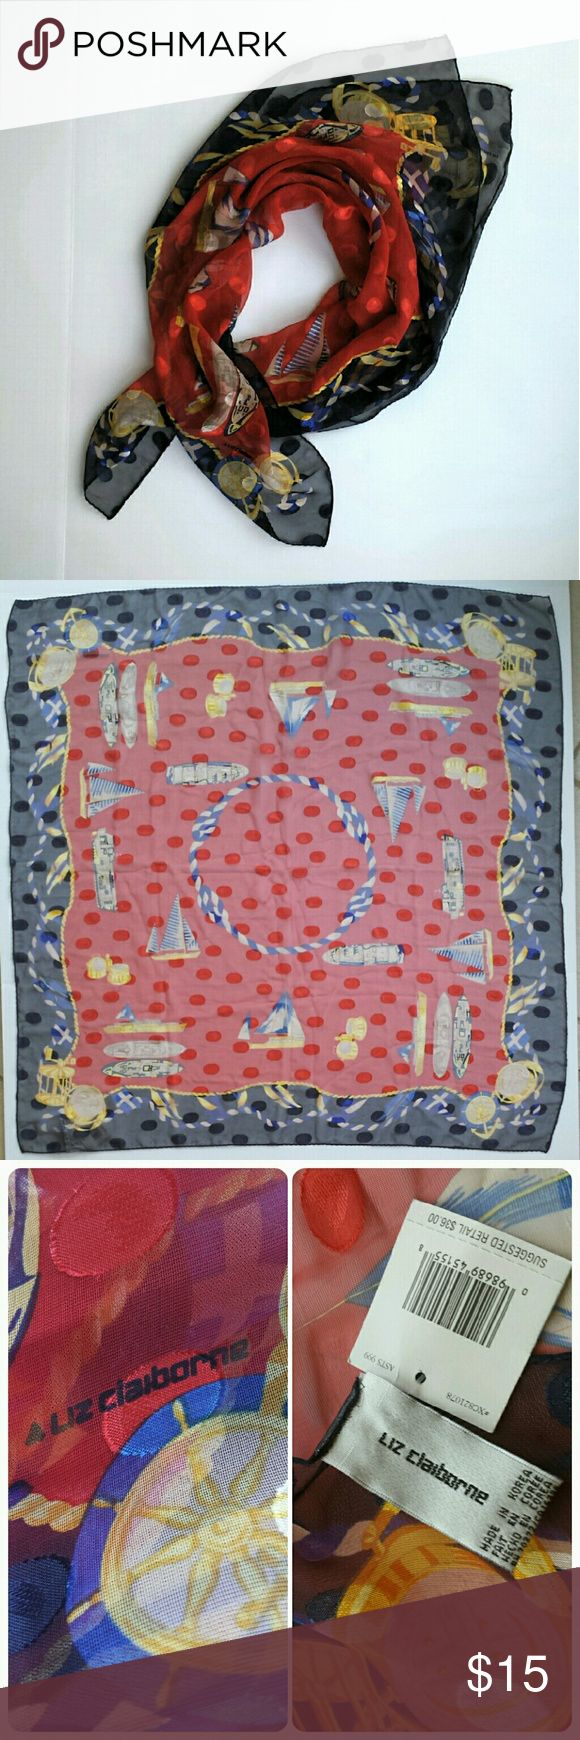 """Vintage Nautical Scarf - Liz Claiborne Ships Ahoy! This beautiful polyester chiffon scarf is covered with yachts and everything nautical. Red, navy, blue, ivory, and gold. Nice large size... 34"""" square. 80s vintage with tags. Machine hem. Never worn, but has a couple of small snags in the blue areas that will not show when worn (see last photo.) Priced with this condition in mind.  Bundle any two items for my 20% discount and to save on shipping Liz Claiborne Accessories Scarves & Wraps"""